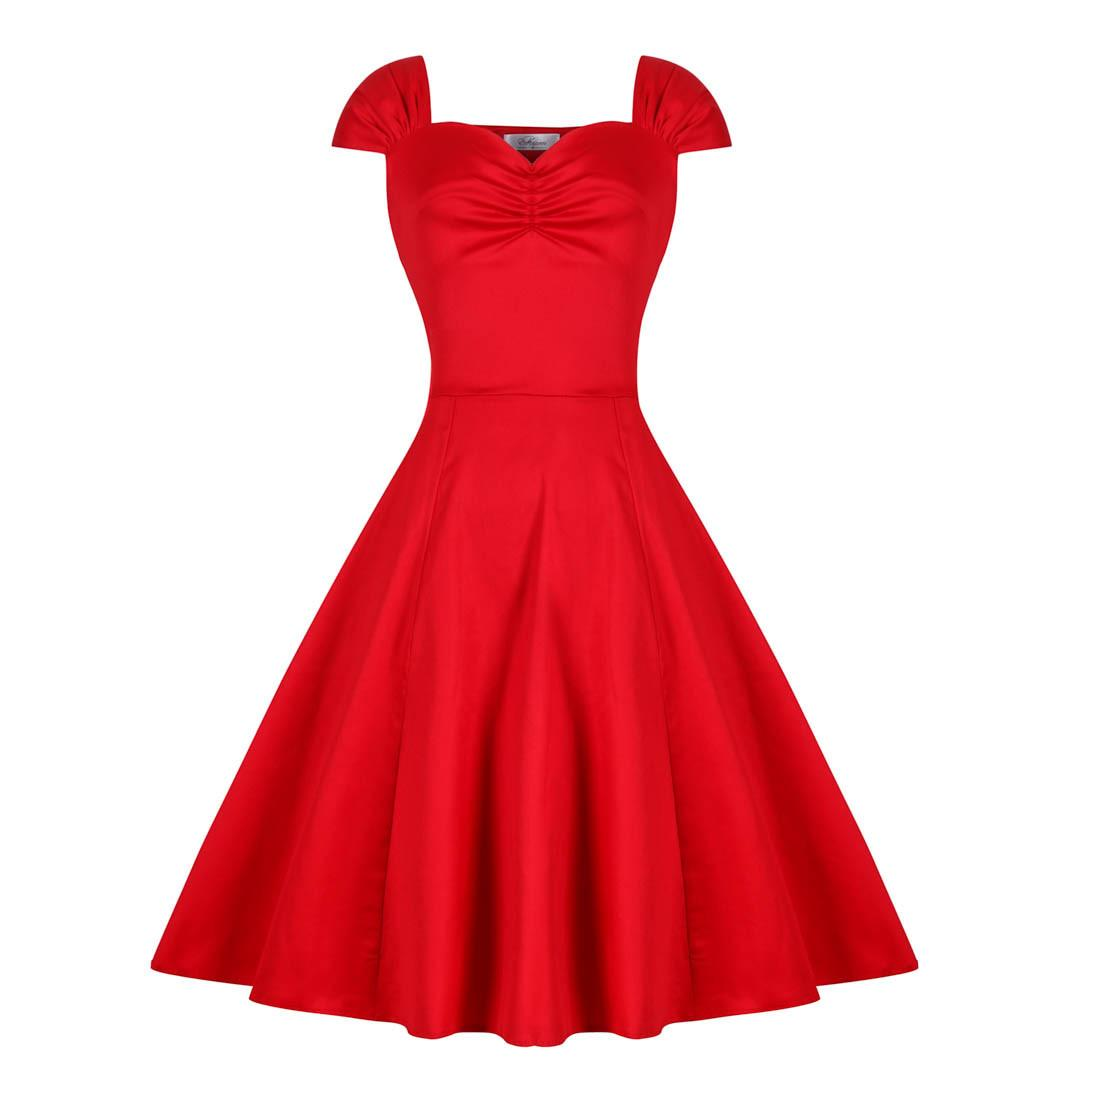 Women's 1950s Hepburn Style Slash Neck Vintage Retro Cocktail Solid Gown Tea Swing Casual Rockabilly Party Evening Dress